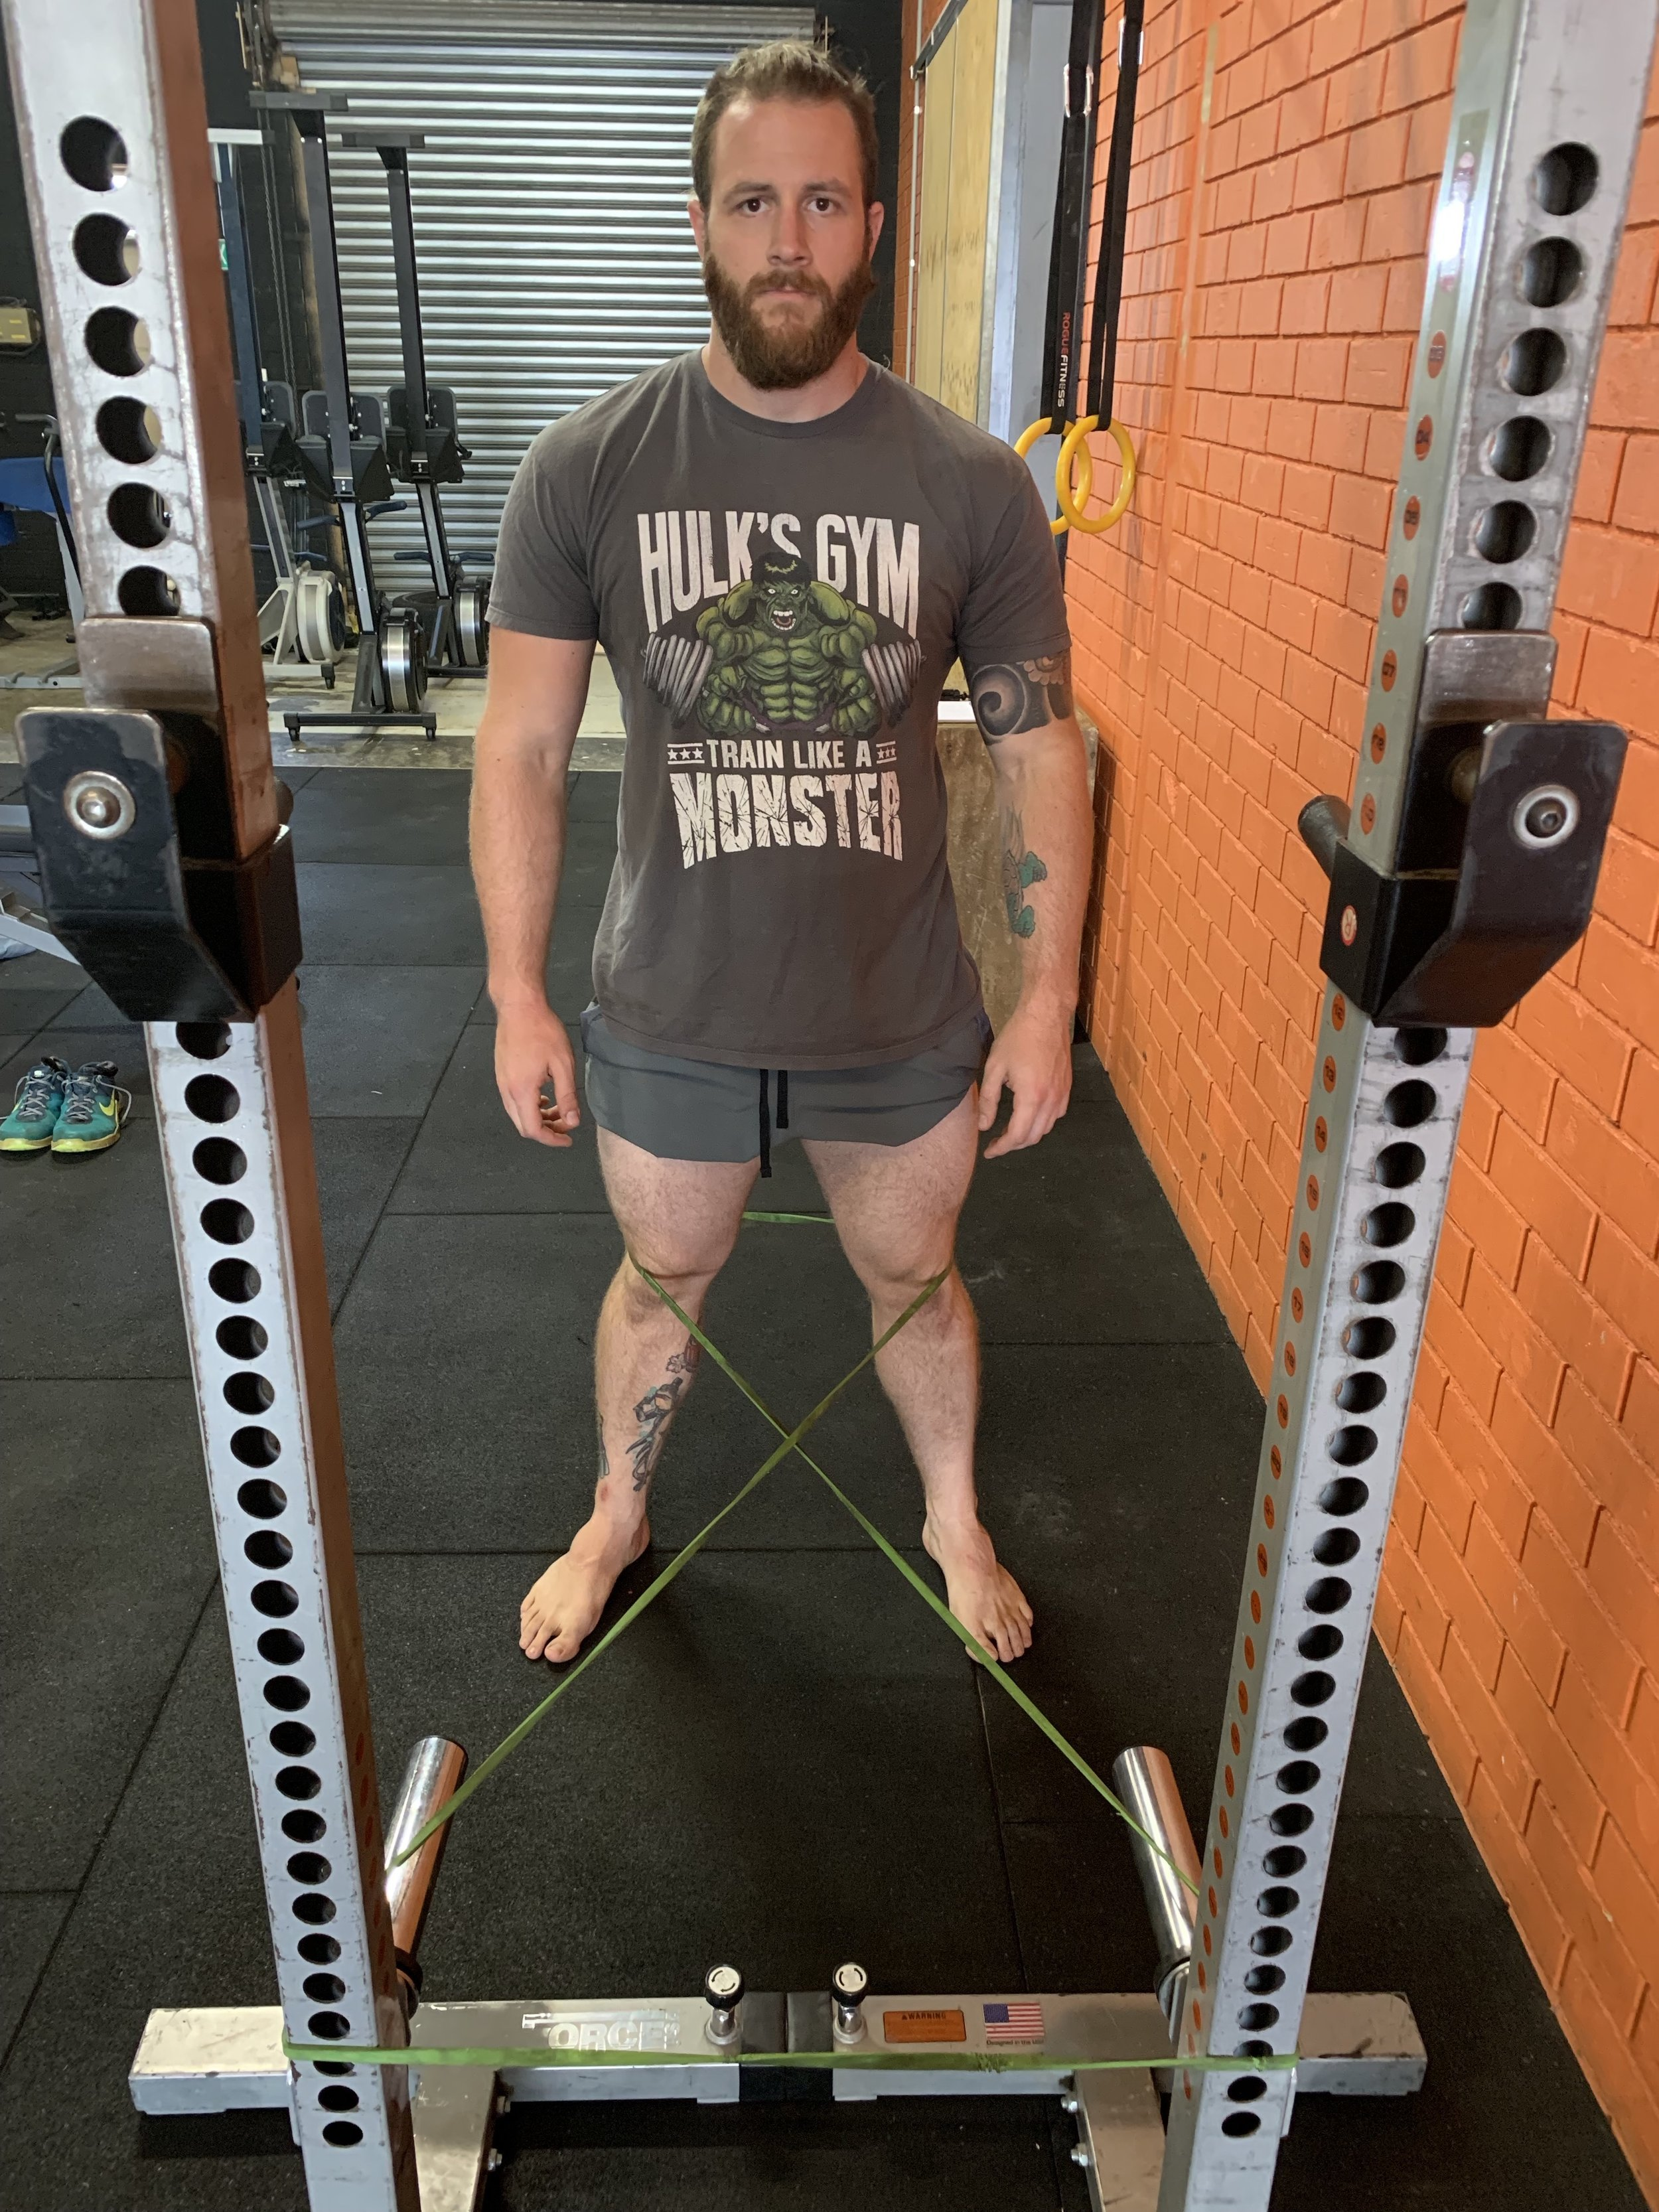 Set-up for using resistance bend to correct knee valgus while squatting.